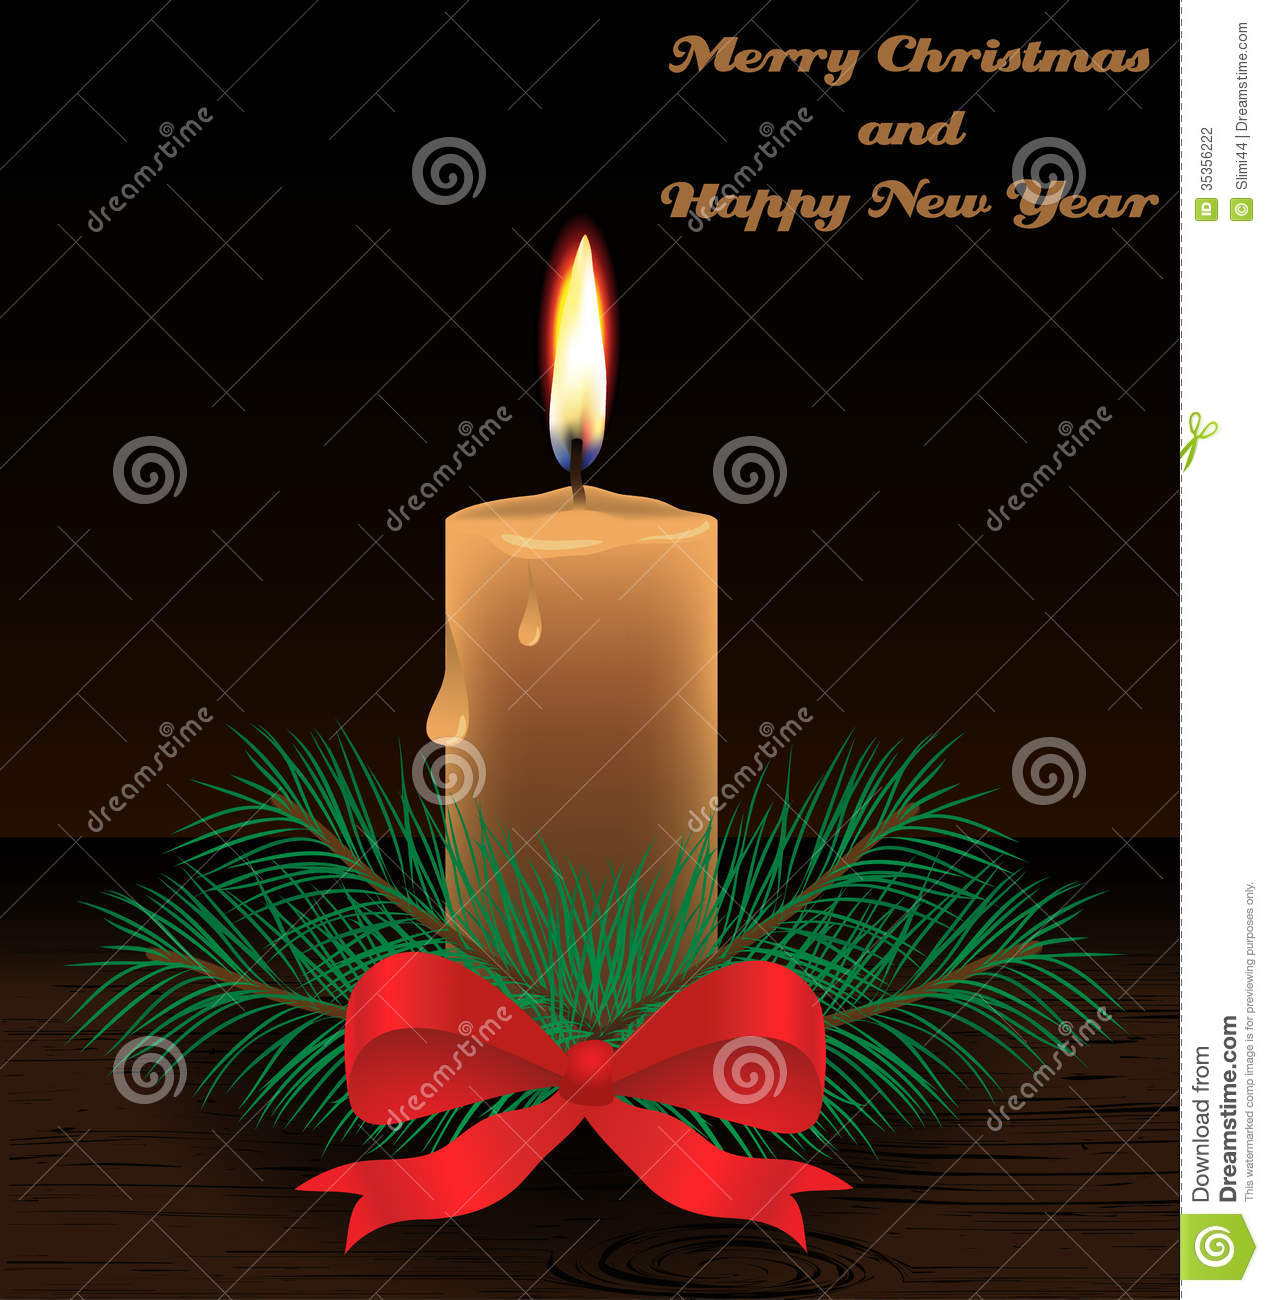 Merry Christmas Card With Candle Stock Vector Image